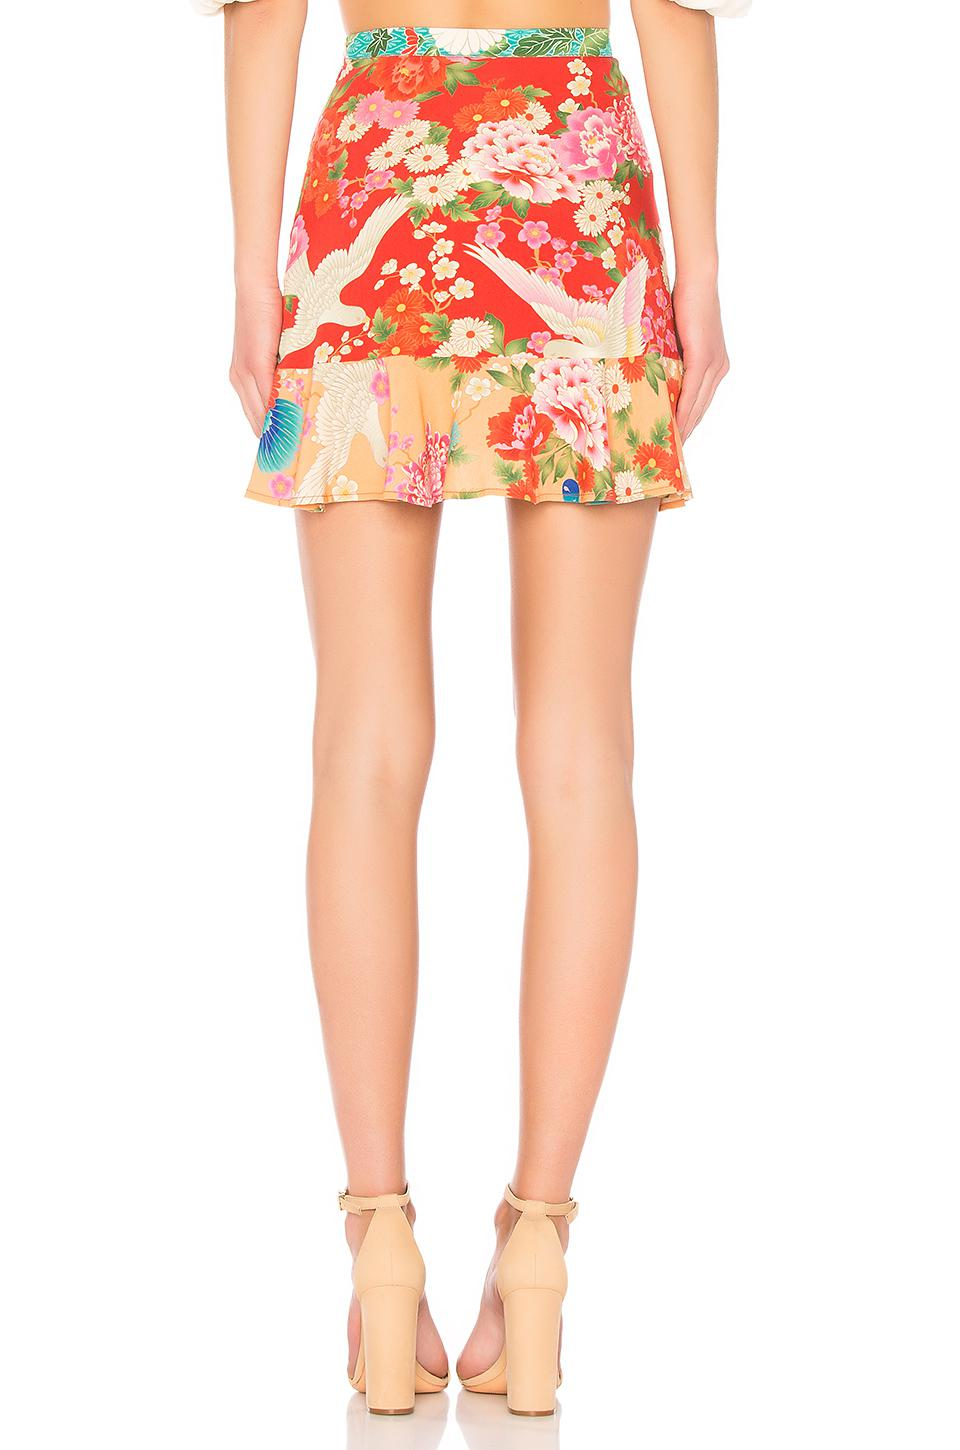 15dddef8f Gallery. Previously sold at: REVOLVE · Women's Gypsy Skirts Women's Red  Skirts